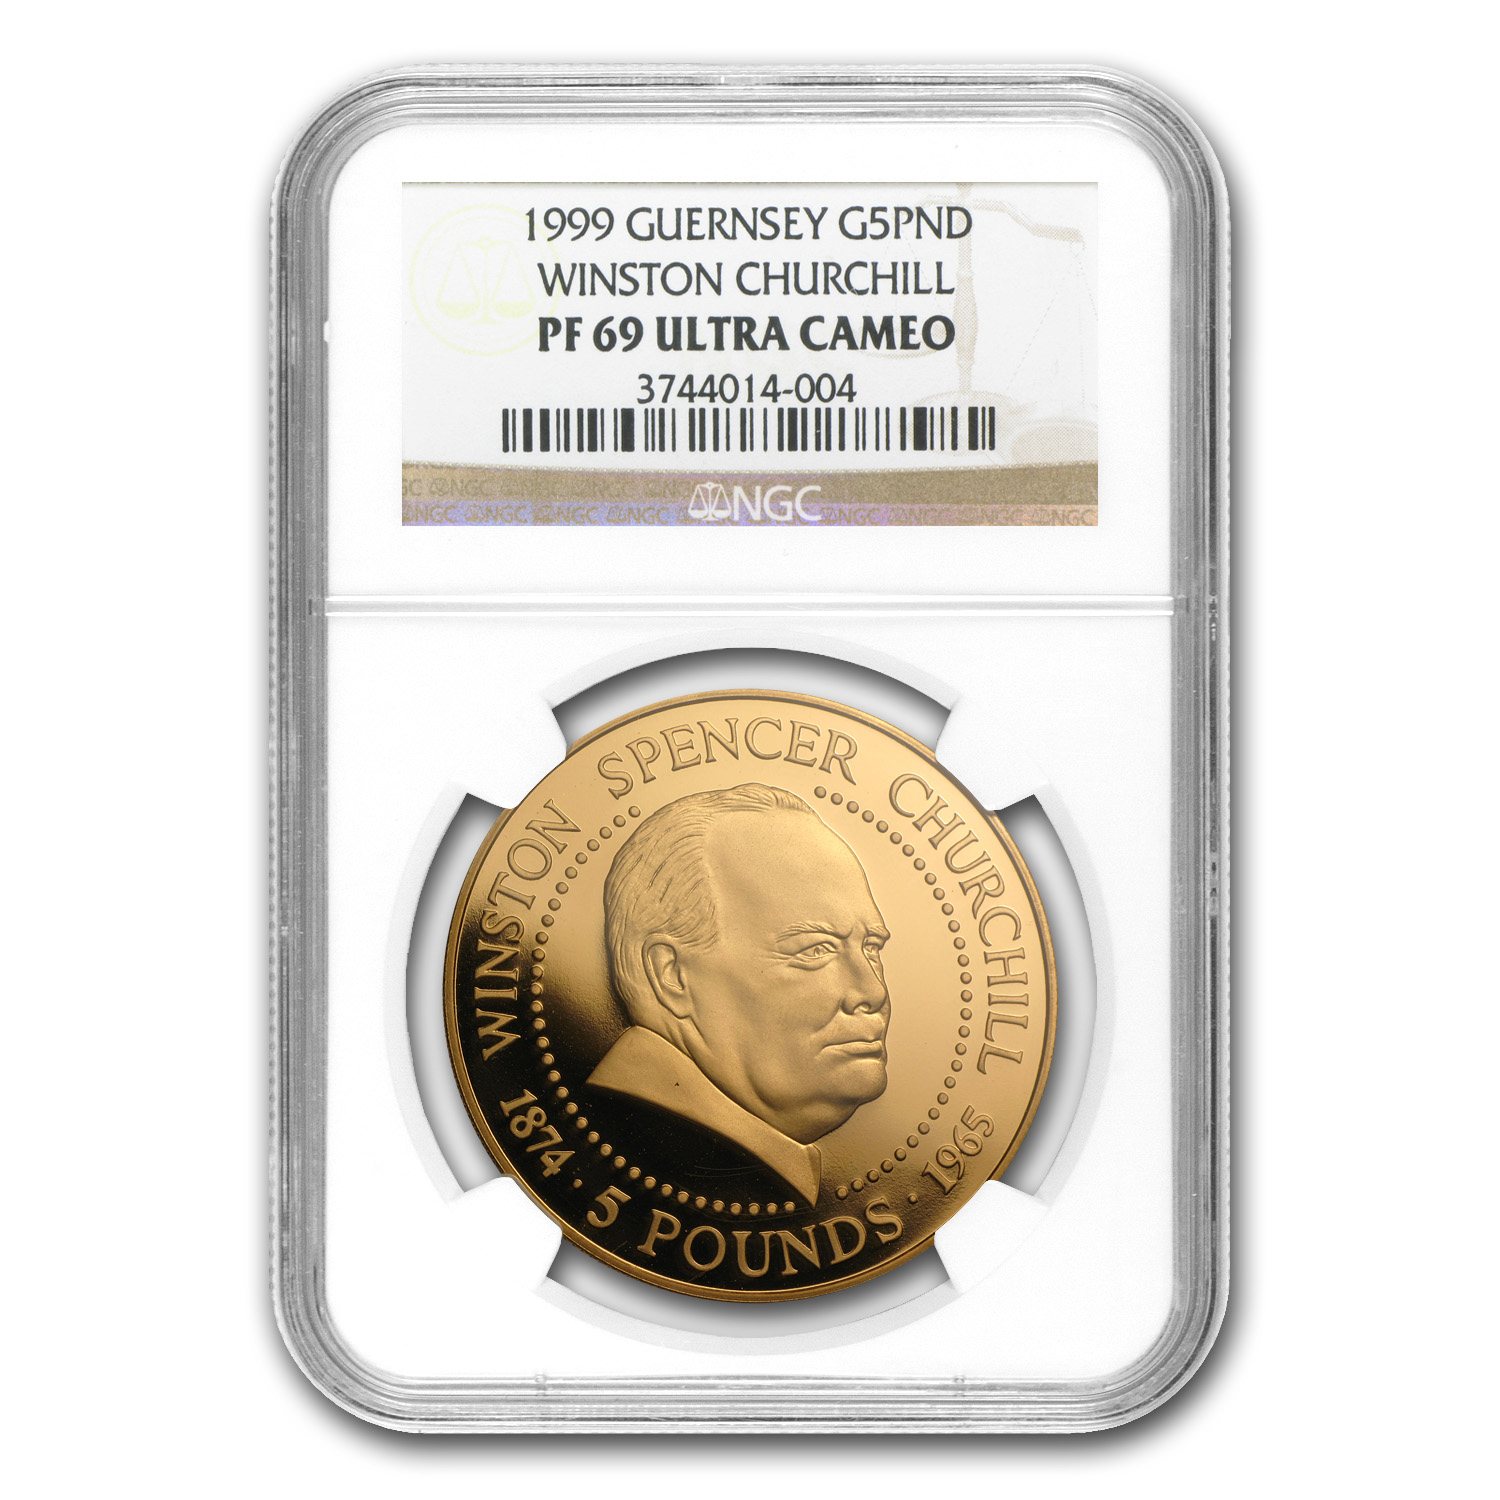 1999 Guernsey Proof Gold £5 Churchill PF-69 NGC